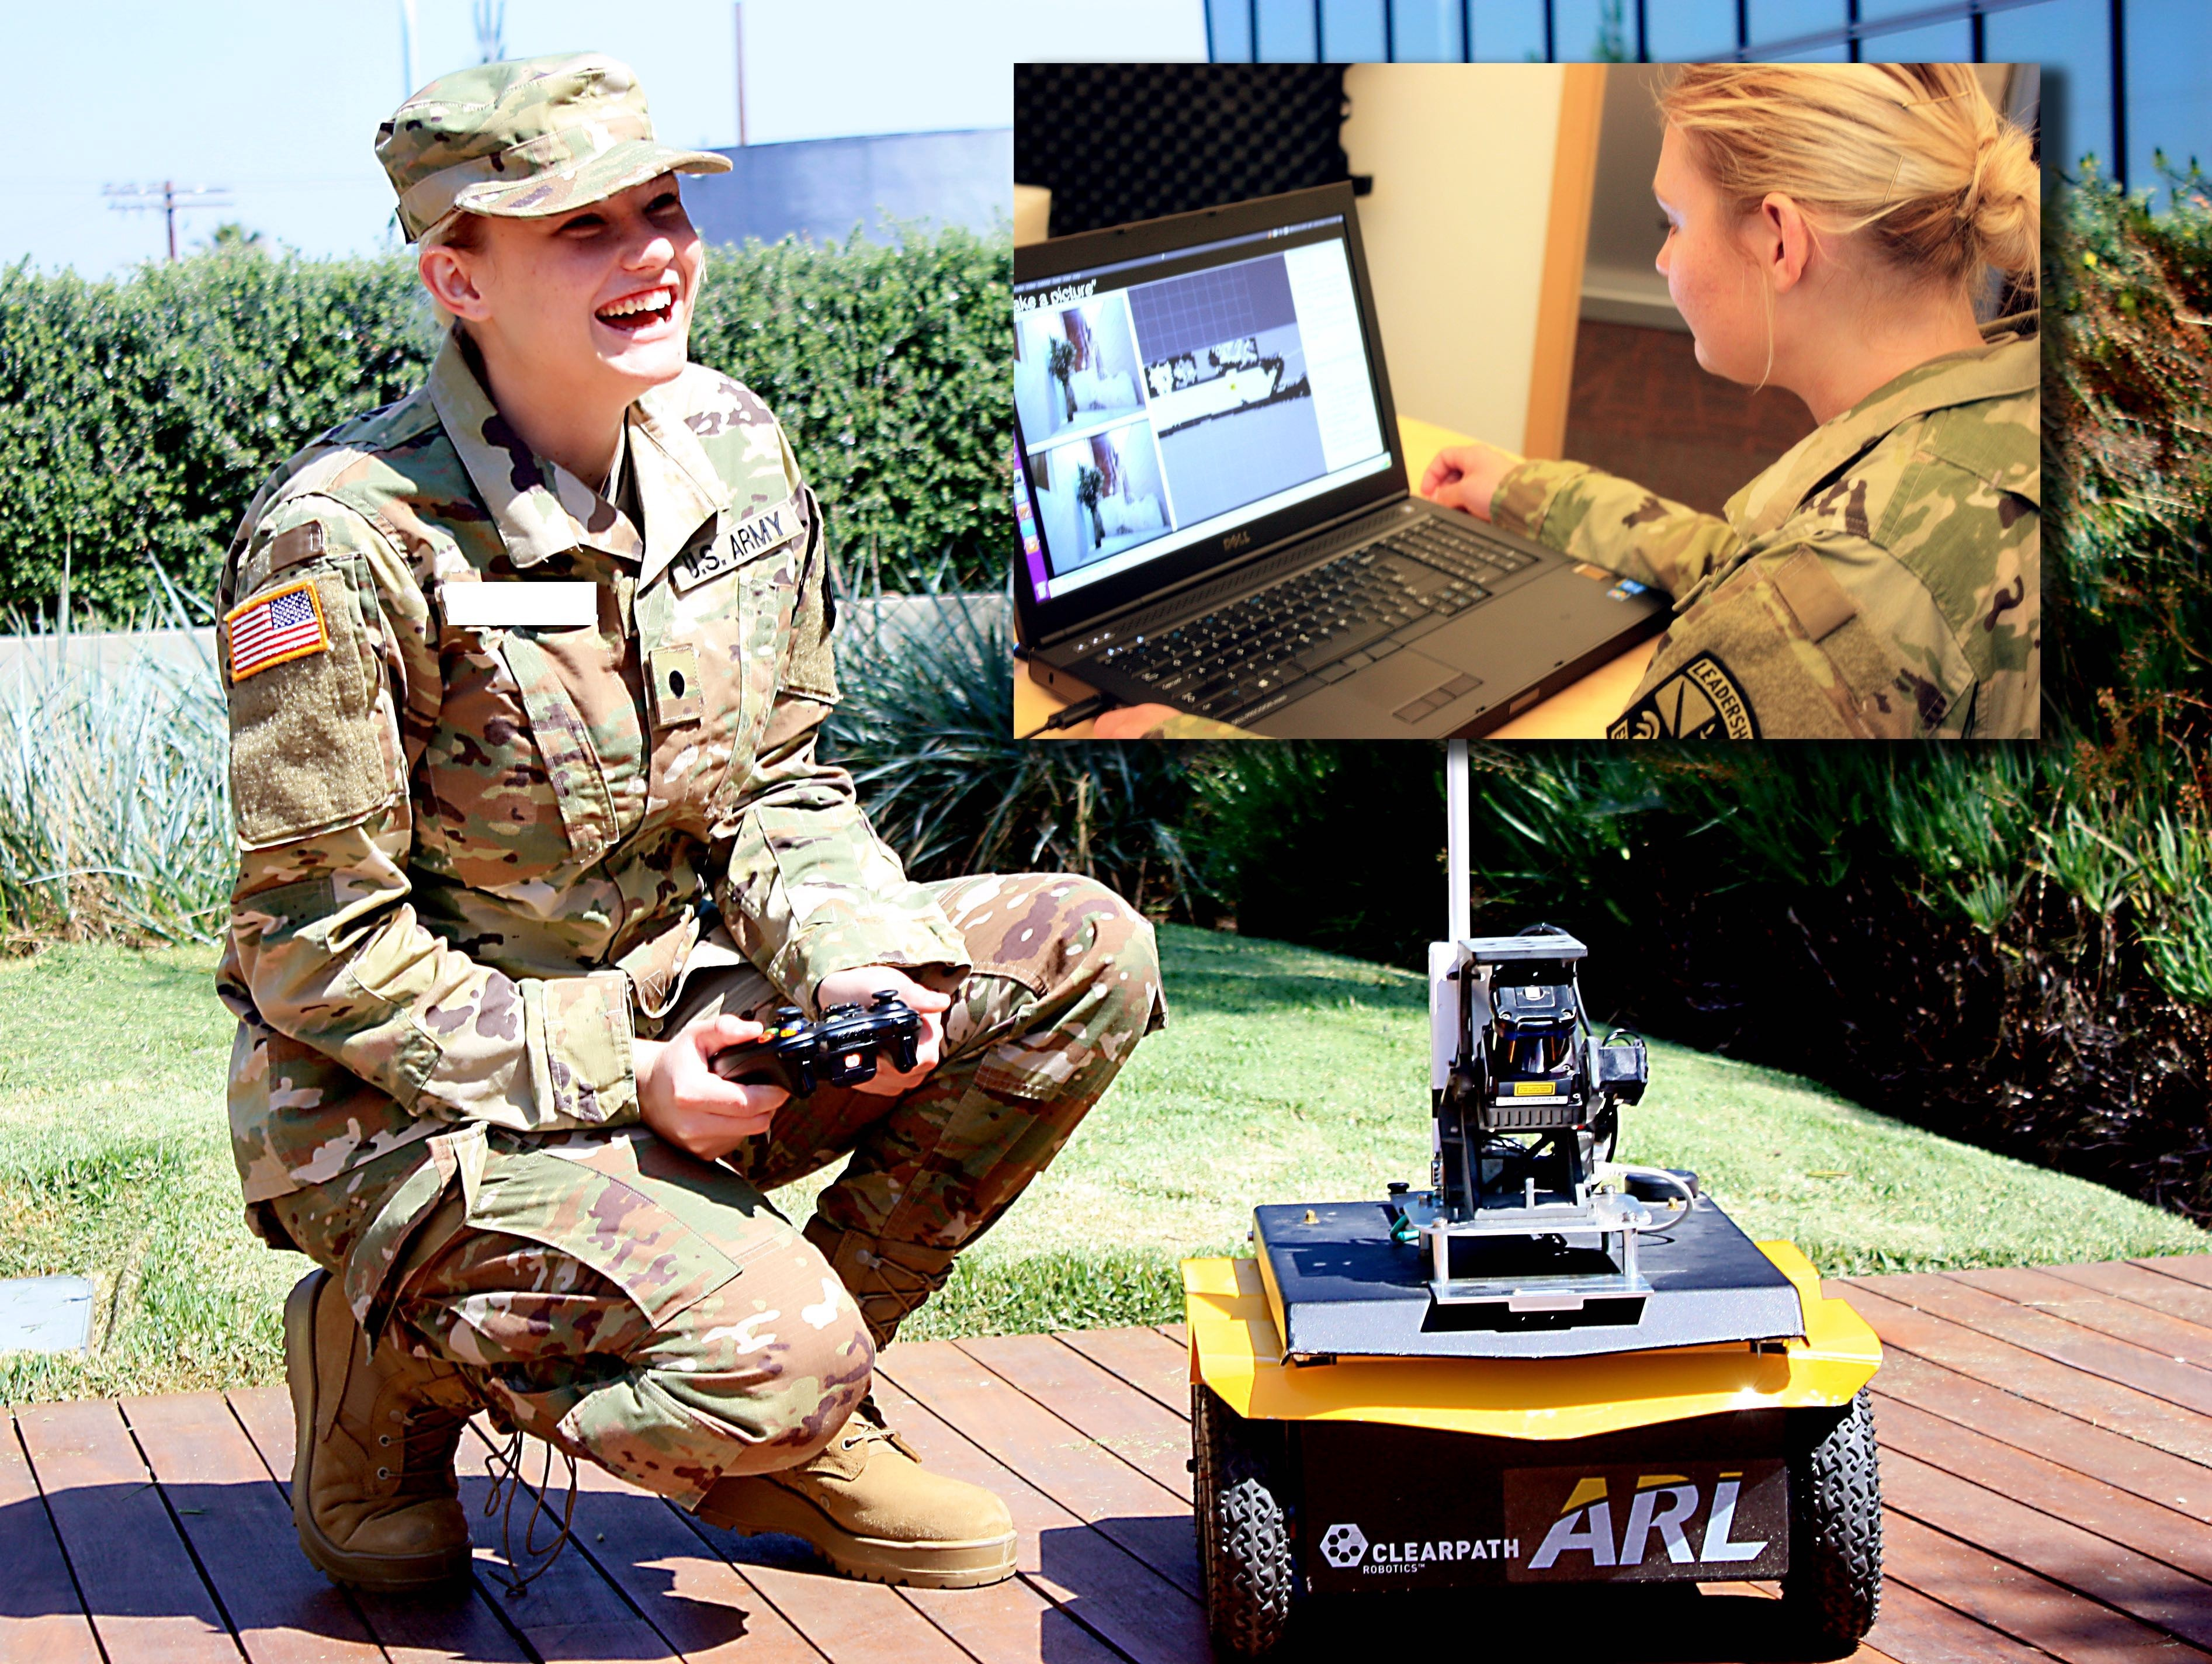 A U.S. Army engineer crouched next to a robotic car, holding its controls.